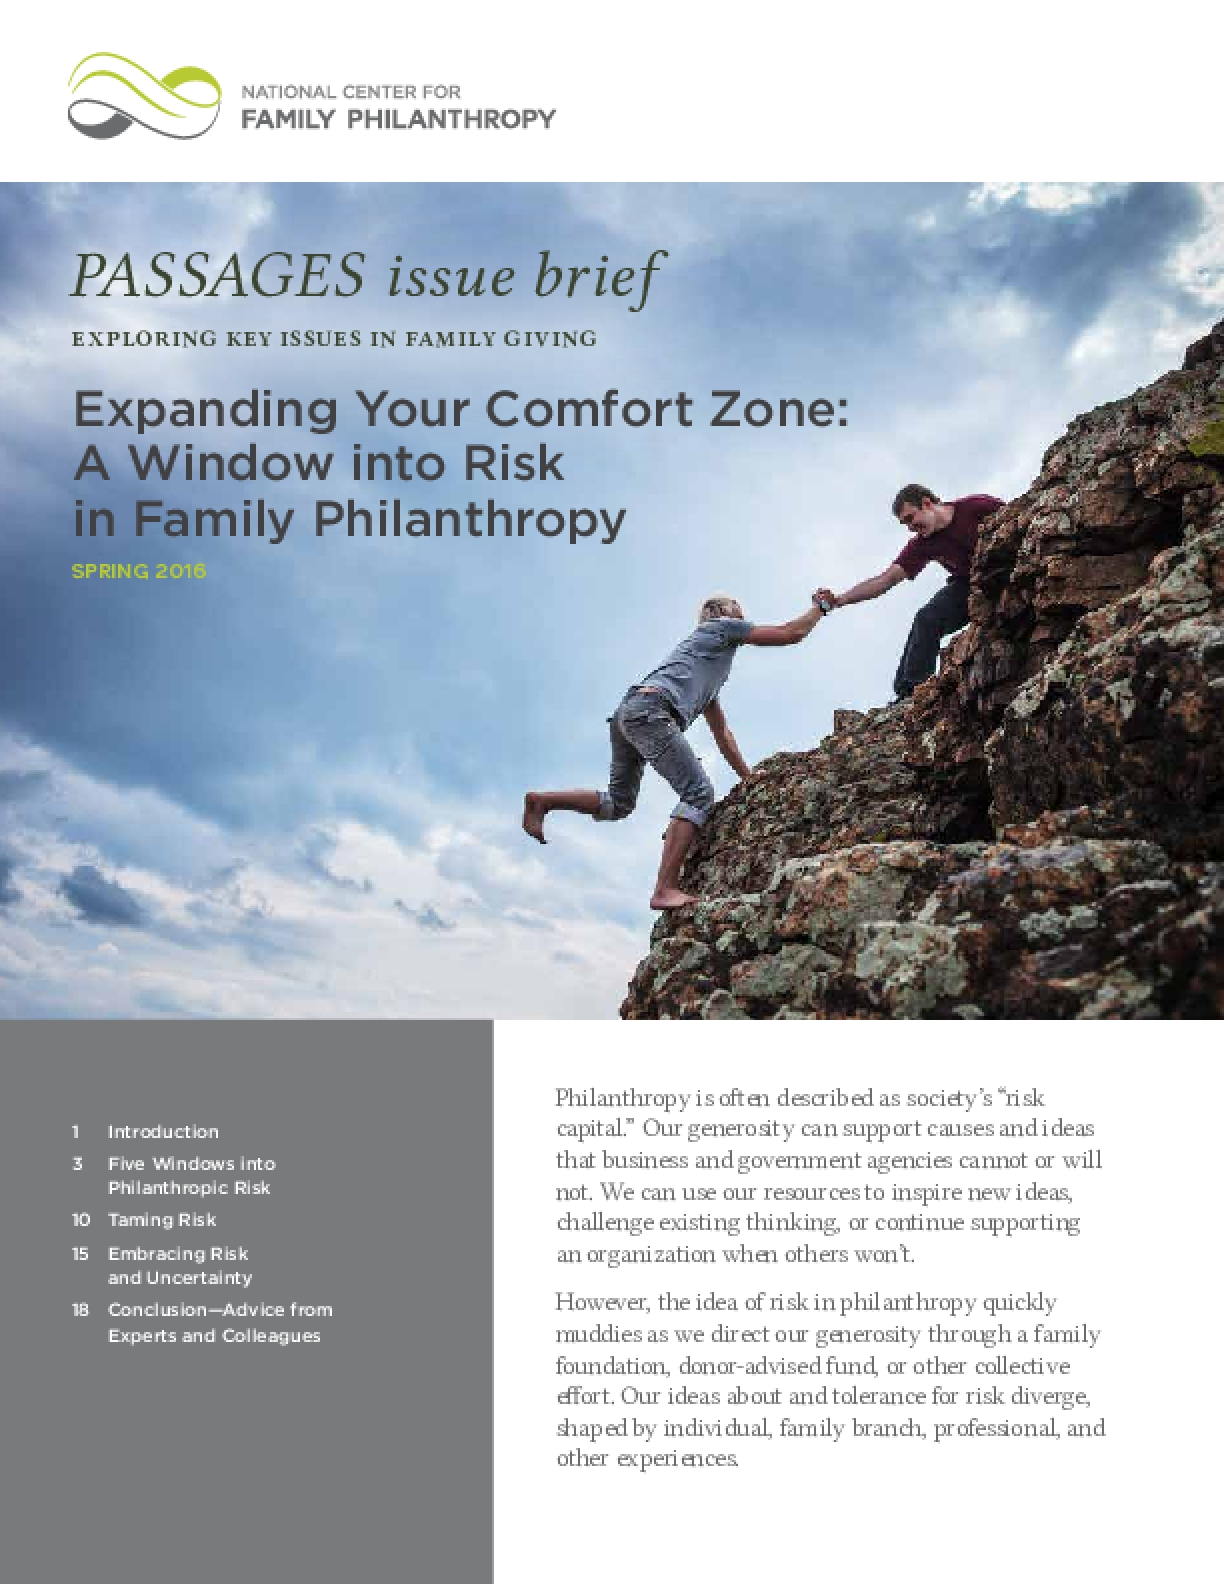 Expanding Your Comfort Zone: A Window into Risk in Family Philanthropy